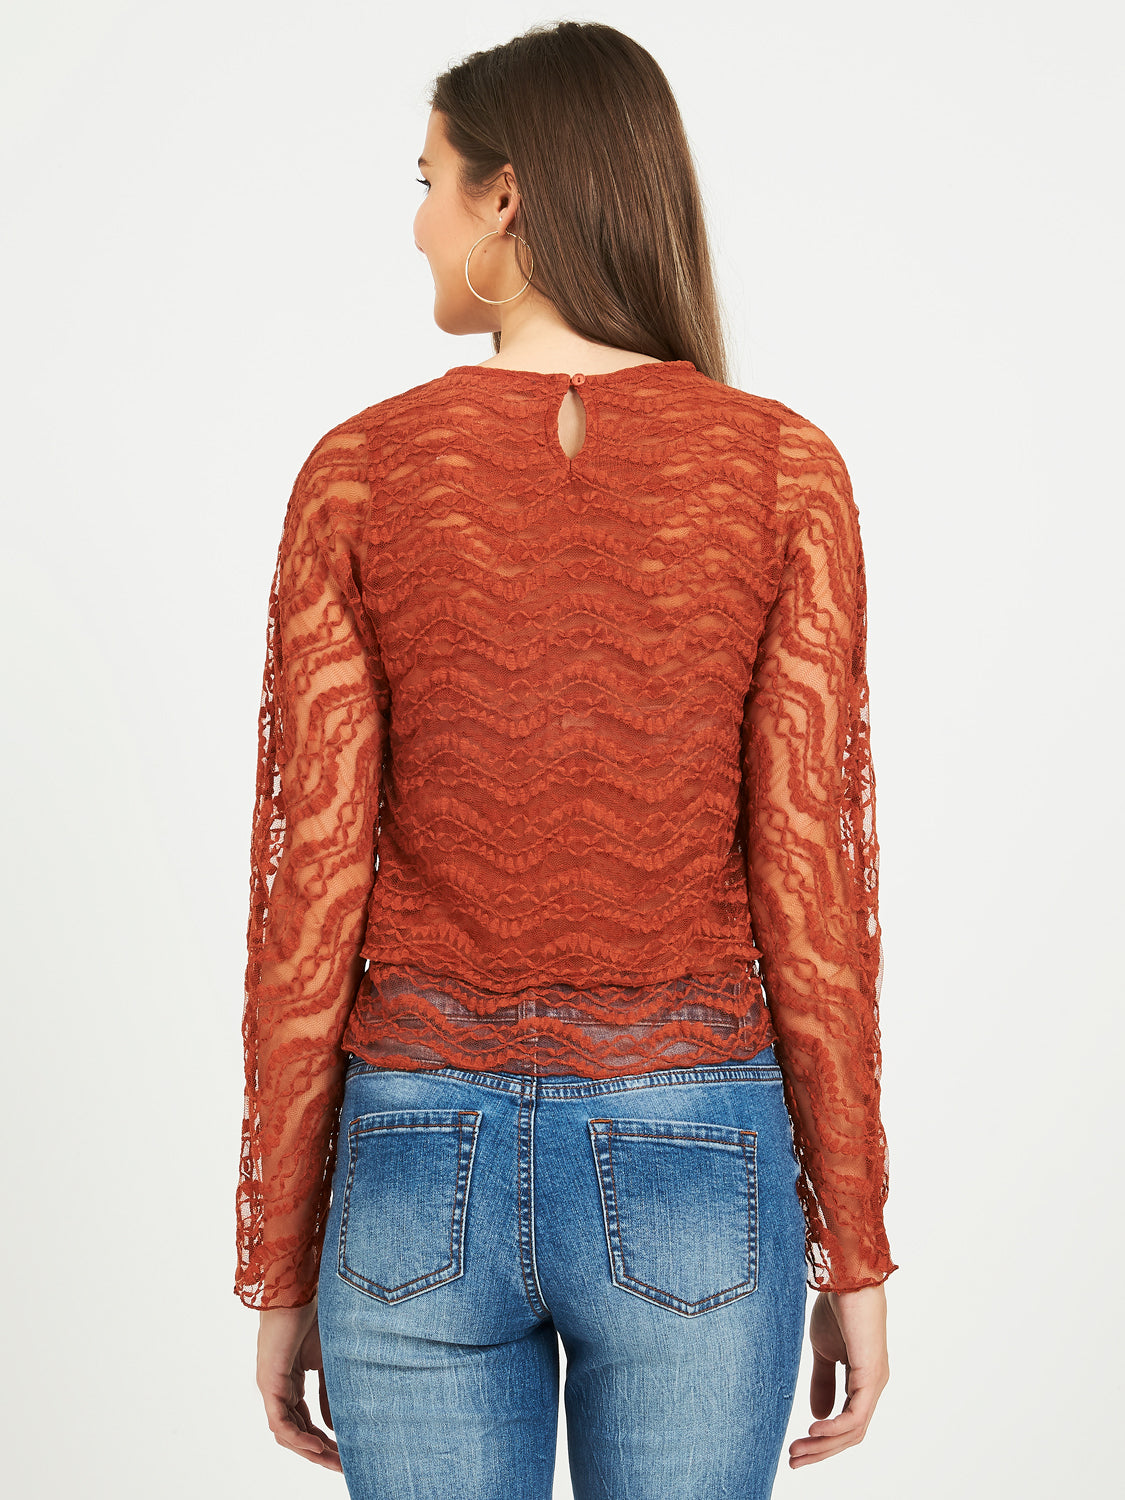 Two-Layer Lace Top